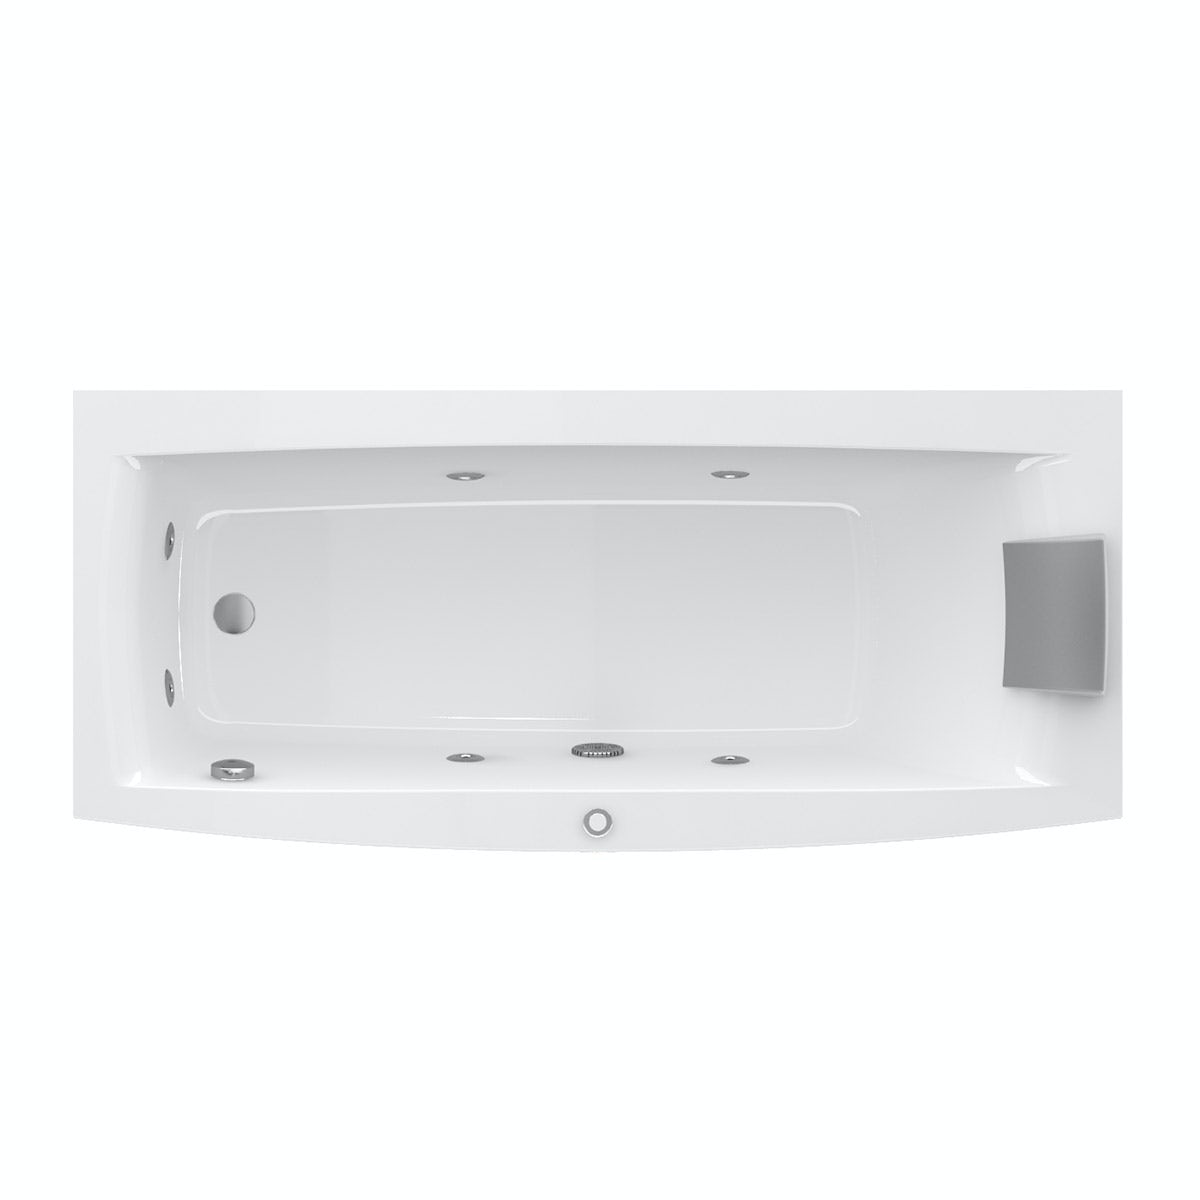 Jacuzzi the Essentials right handed single end whirlpool bath